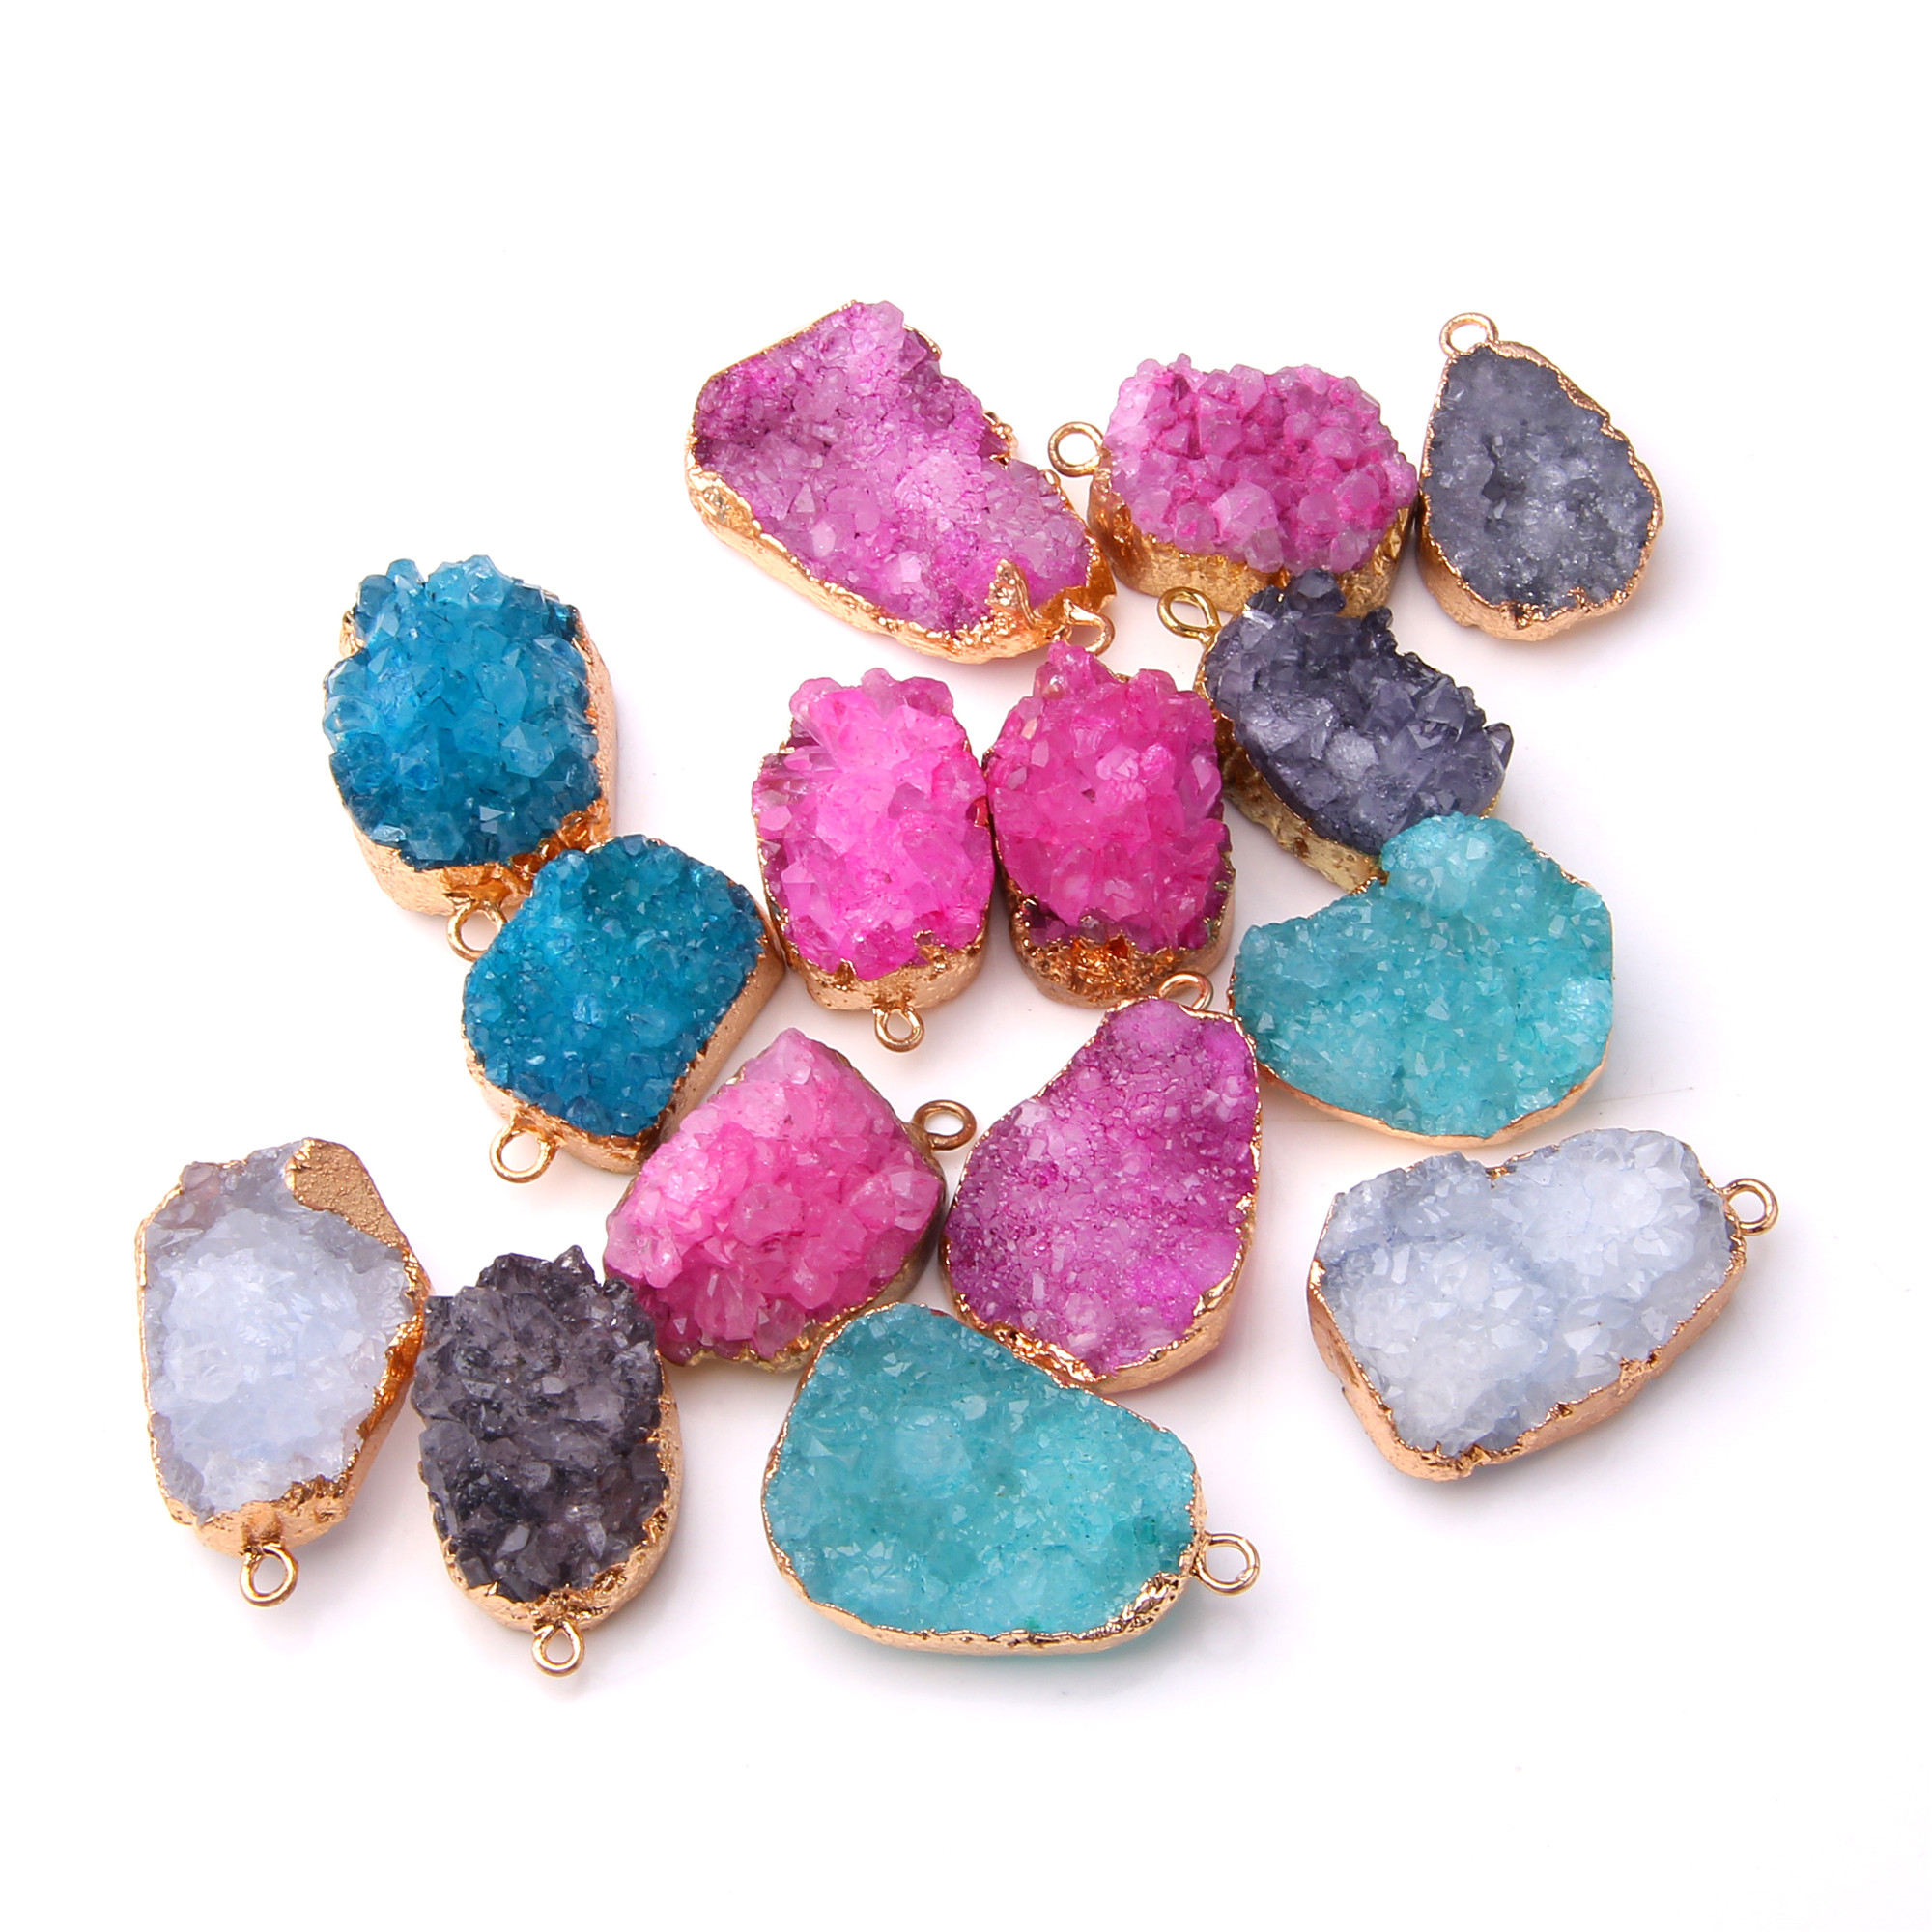 JAB Cluster Aura Druzy Quartz Crystal Point Genuine Natural Turquoise PendantJewelry for Necklace